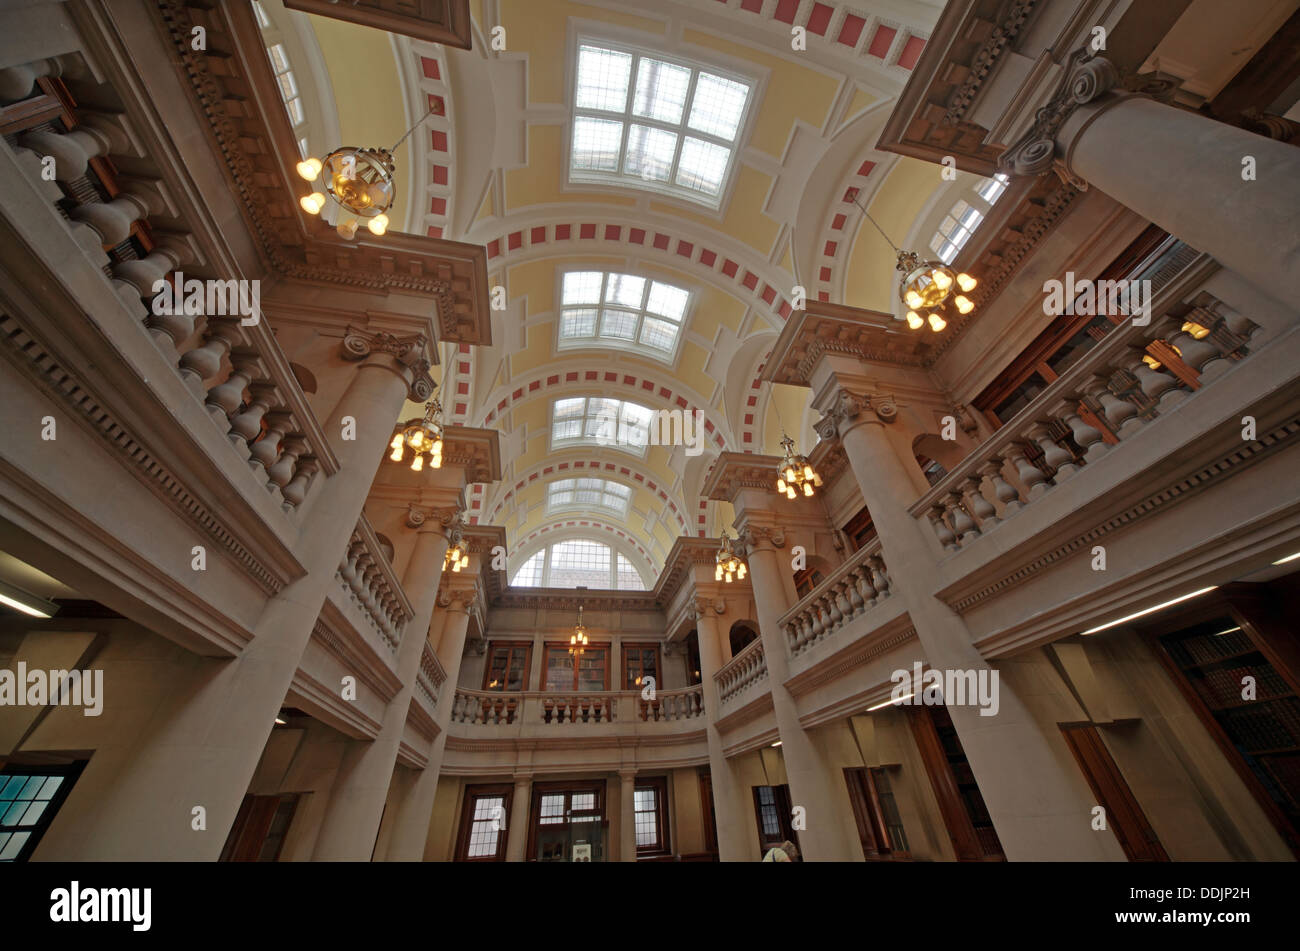 historic,history,book,books,Merseyside,listed,building,buildings,reading,room,grade,II,grade2,gradeII,William,Brown,Street,Cornelius,Sherlock,interior,inside,shelves,shelf,light,lighting,ceiling,dome,G,great,Britain,Architecture,design,round,hall,city,centre,high,tall,gotonysmith,Hugh,Frederick,British,England,English,librarian,librarians,L3,8EW,L38EW,Buy Pictures of,Buy Images Of